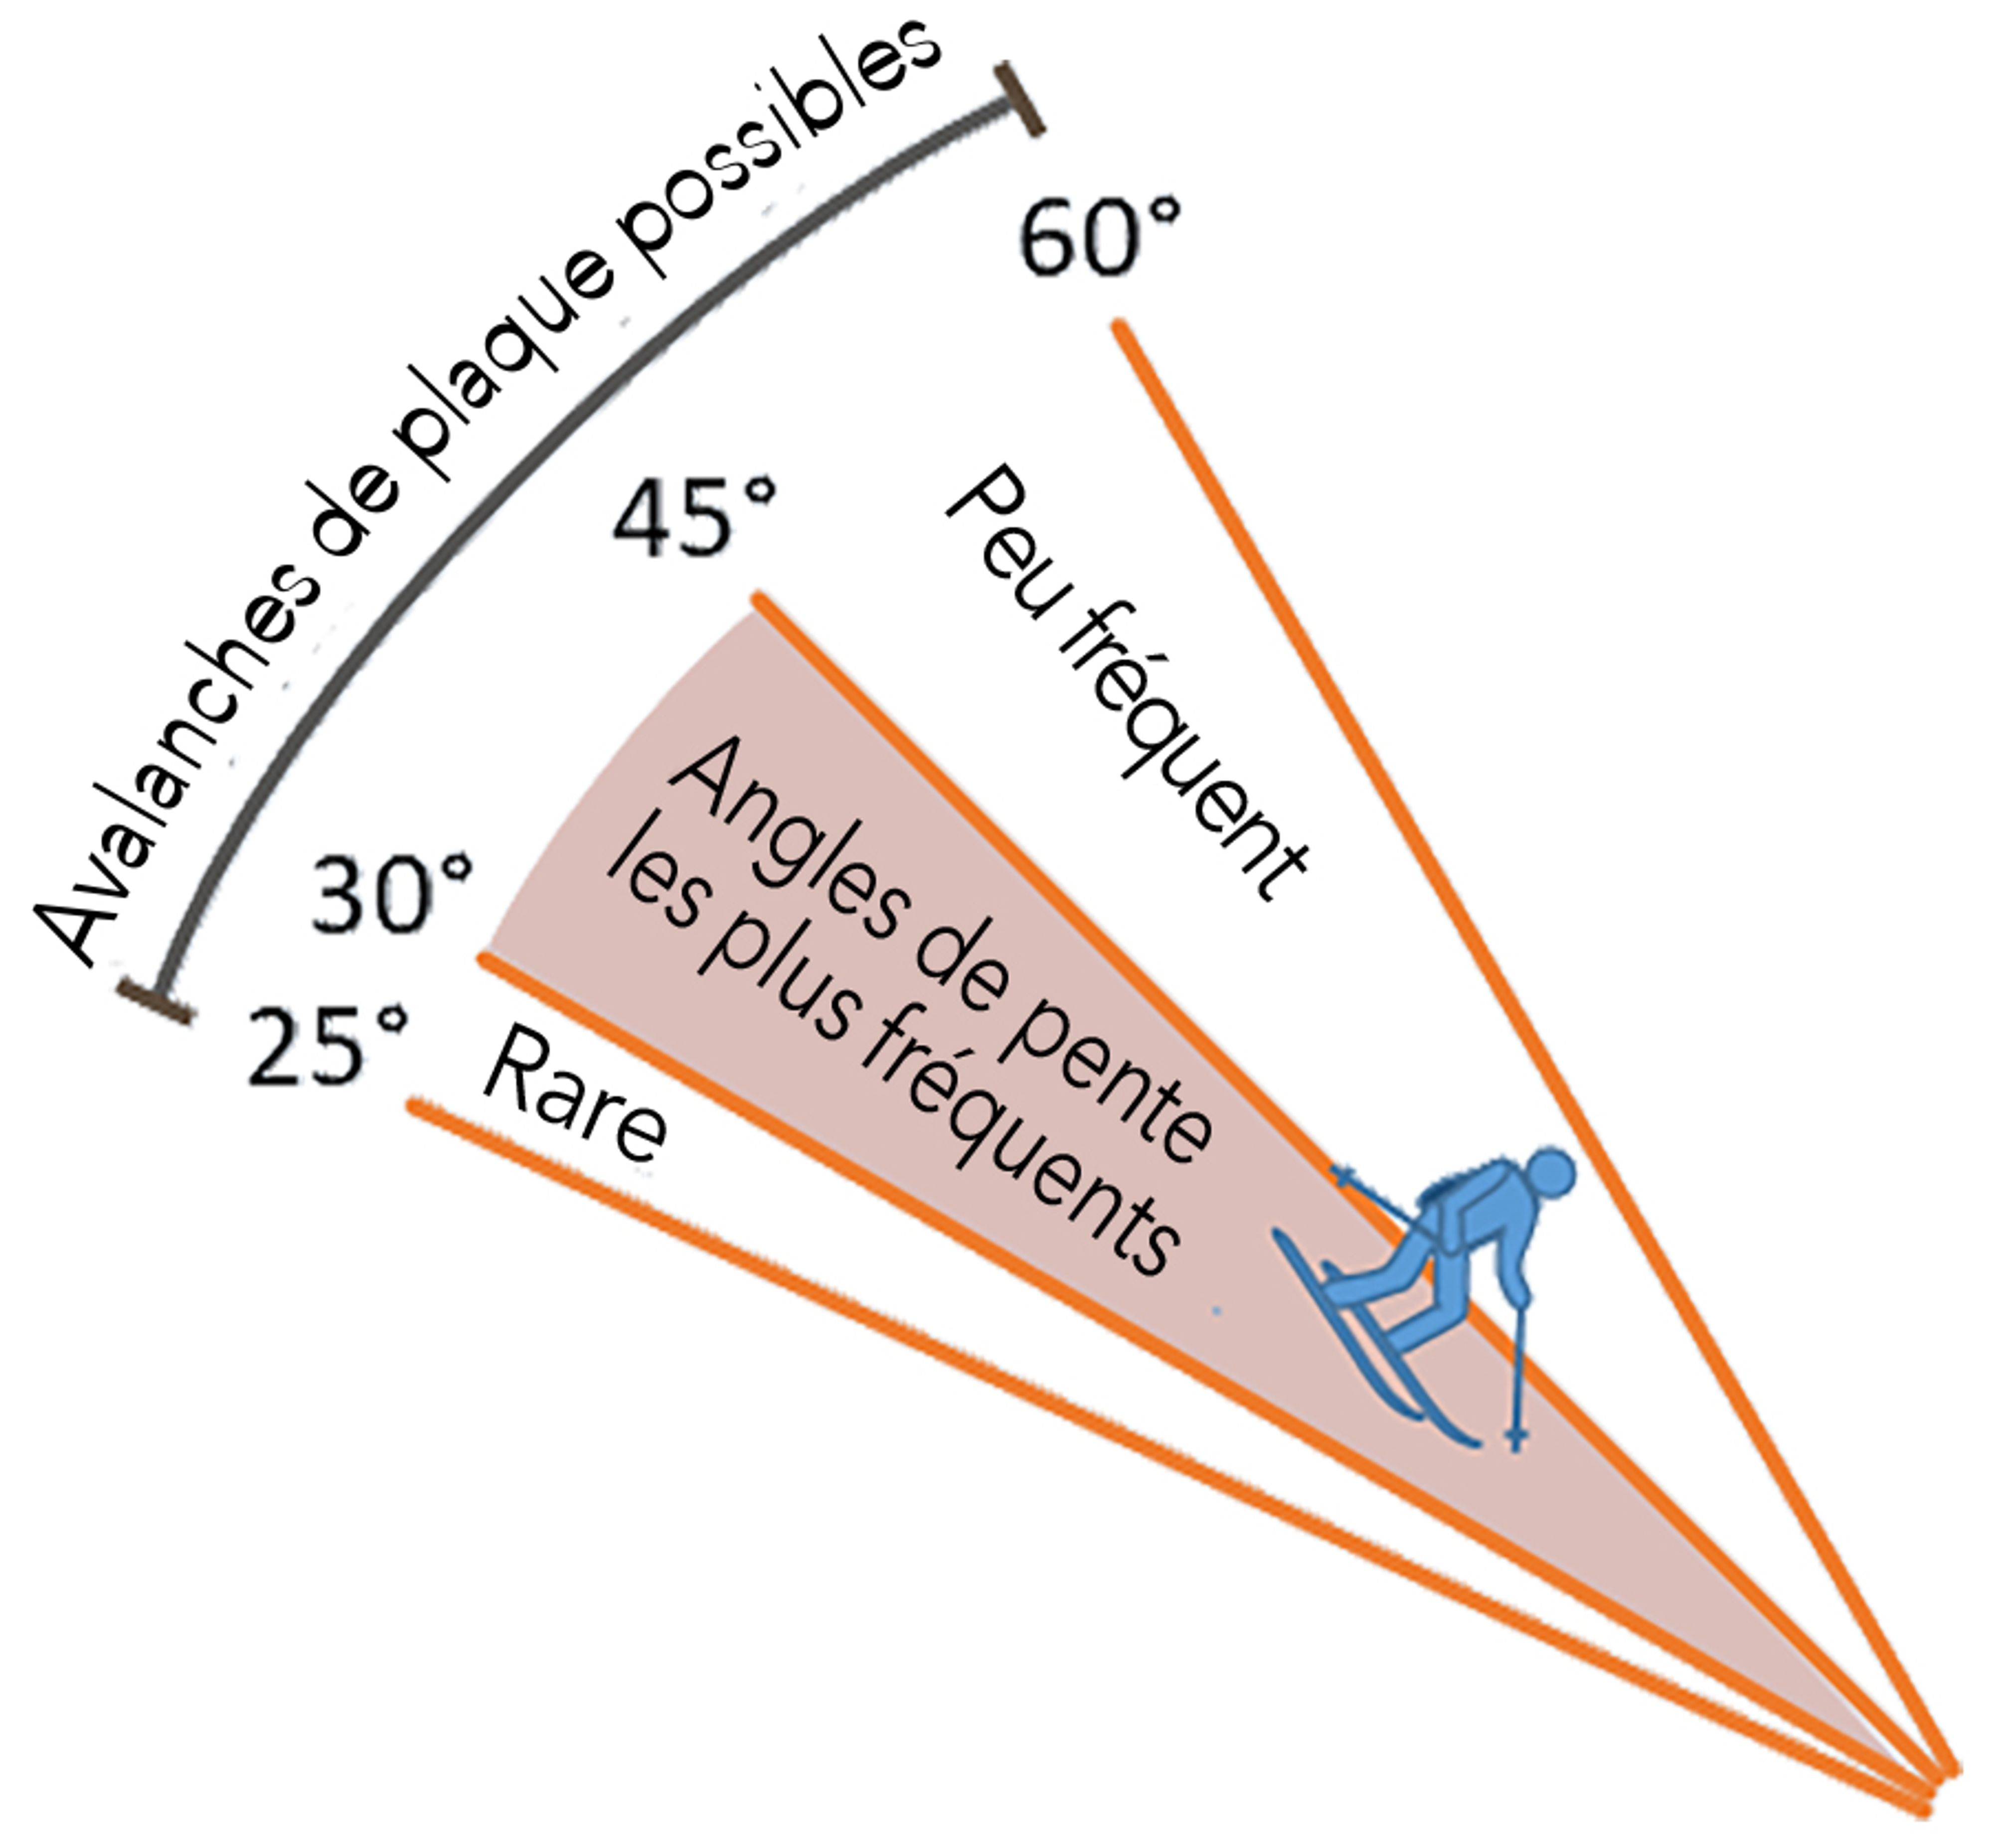 Slope angles on which avalanches occur tend to be those favoured by skiers, snowboarders, and snowmobilers.